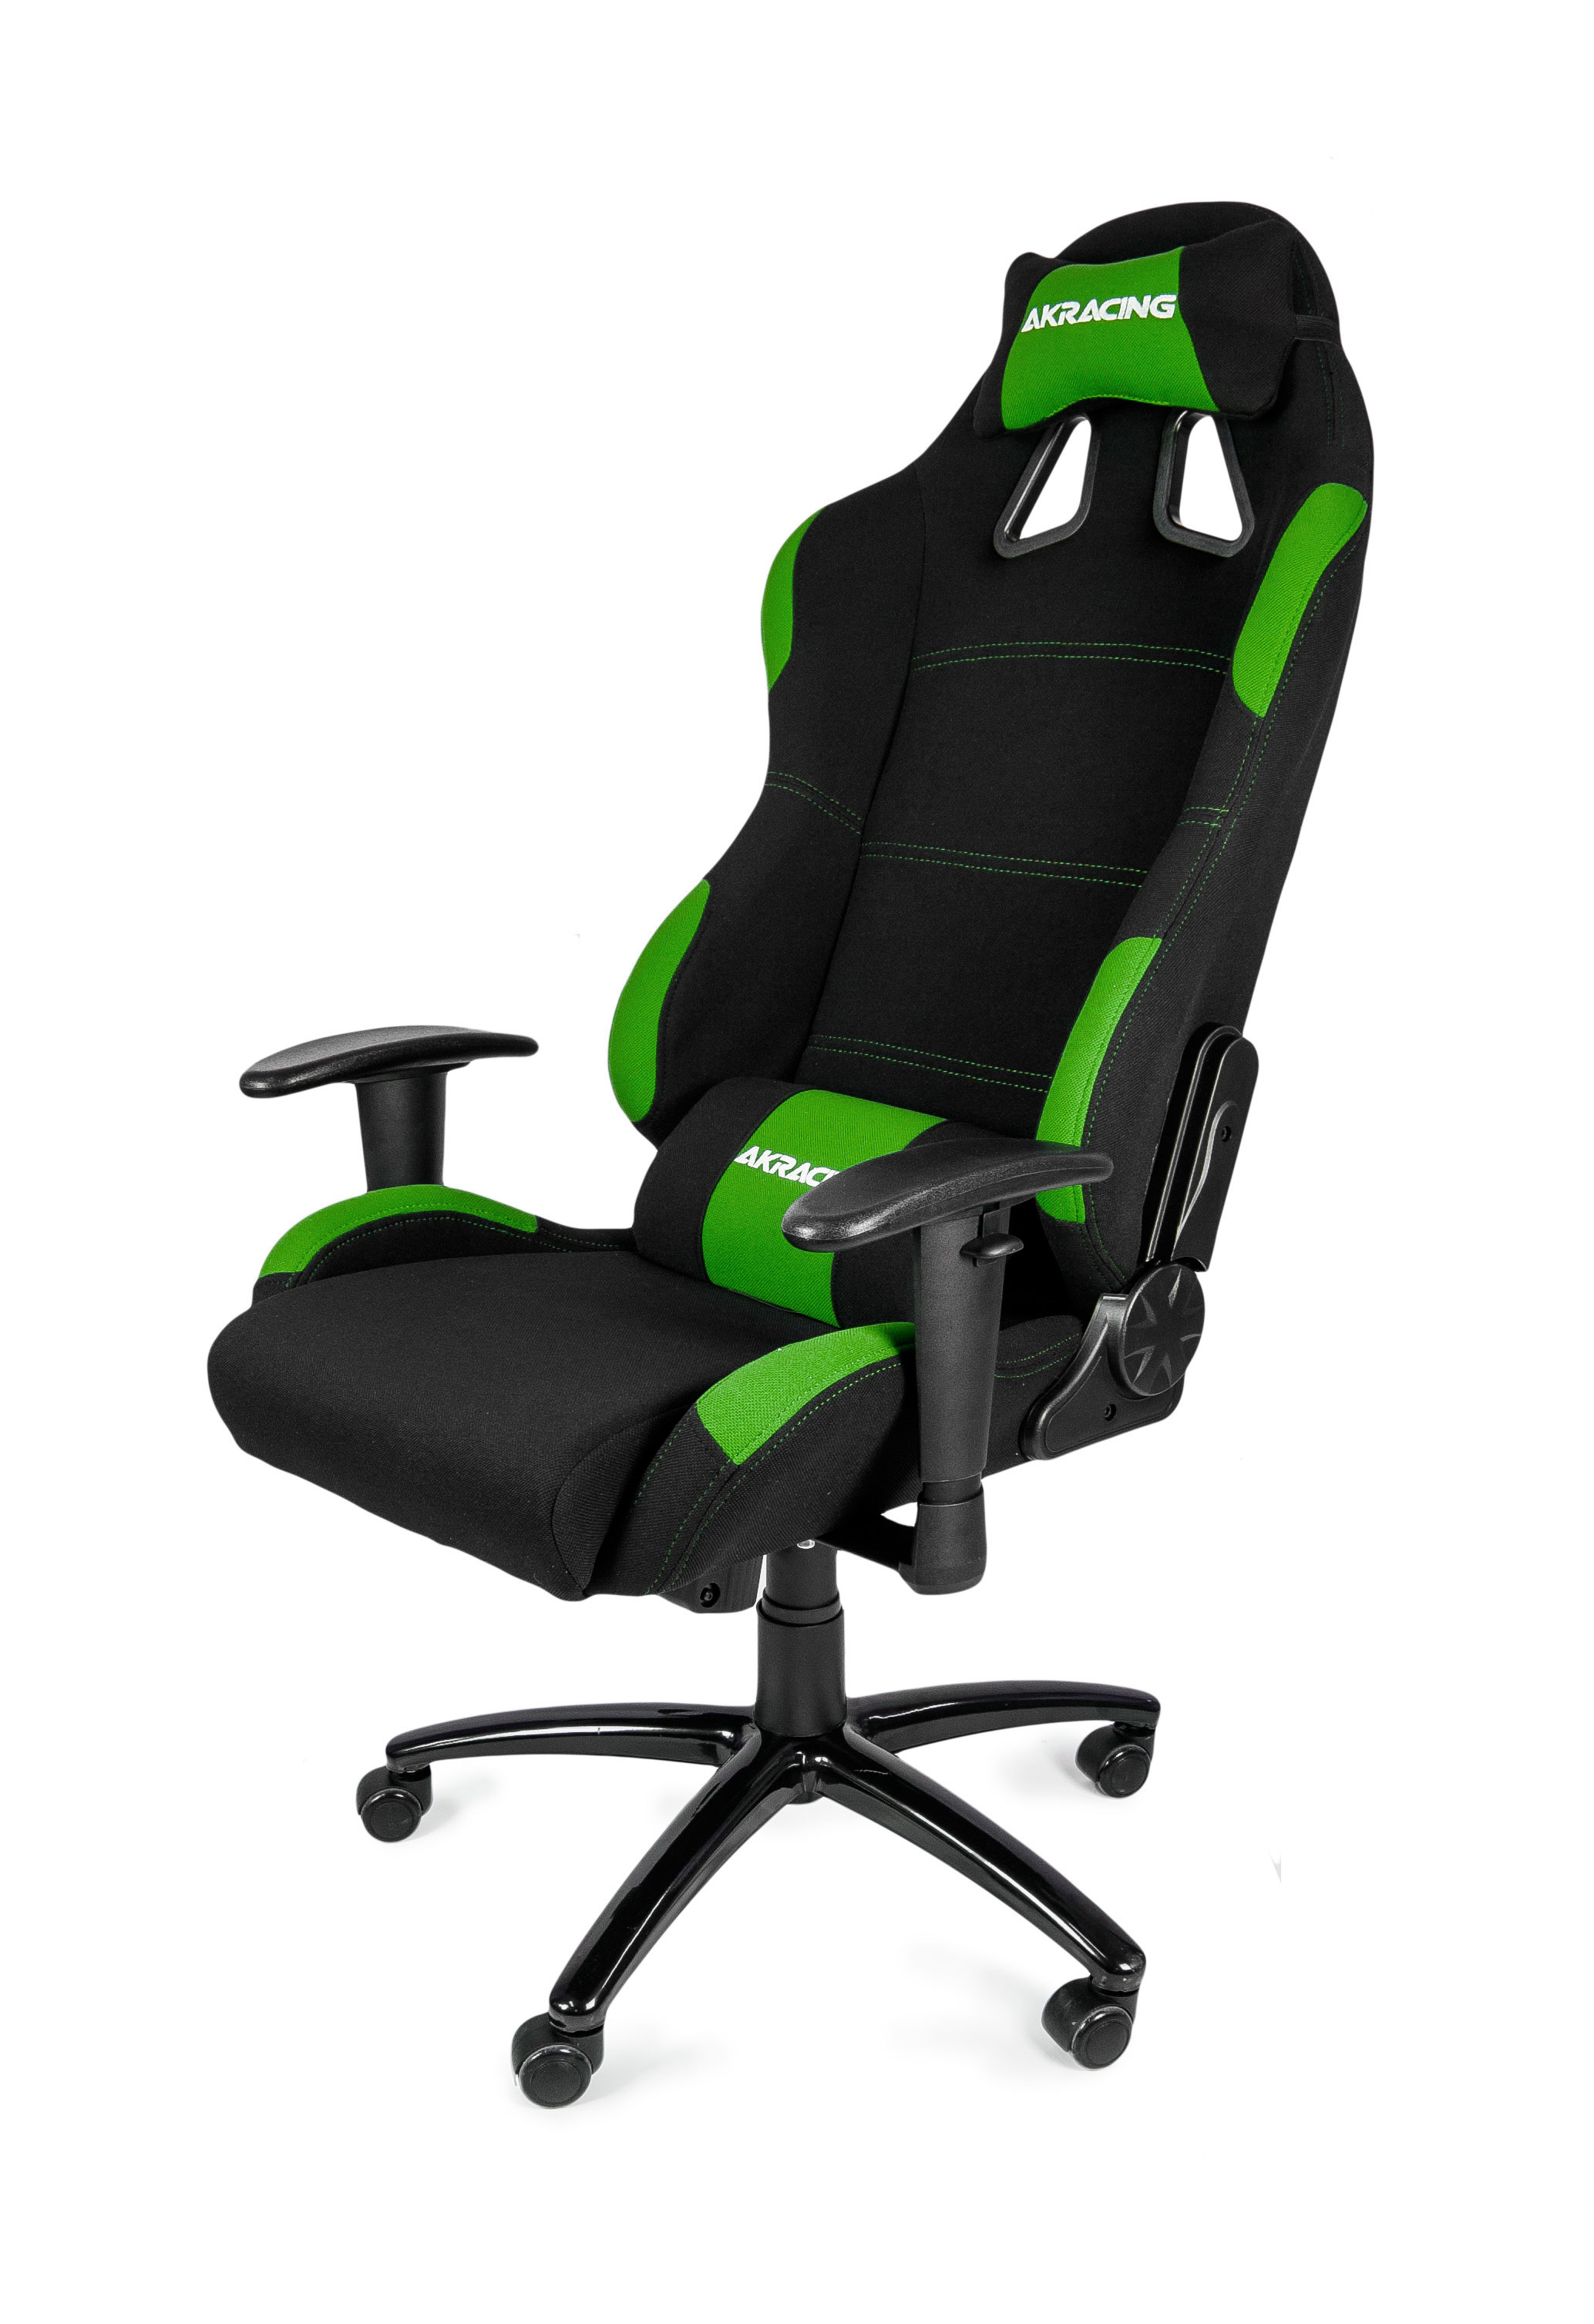 Gamer Chairs Akracing Gaming Chair Black Green Ak K7012 Bg